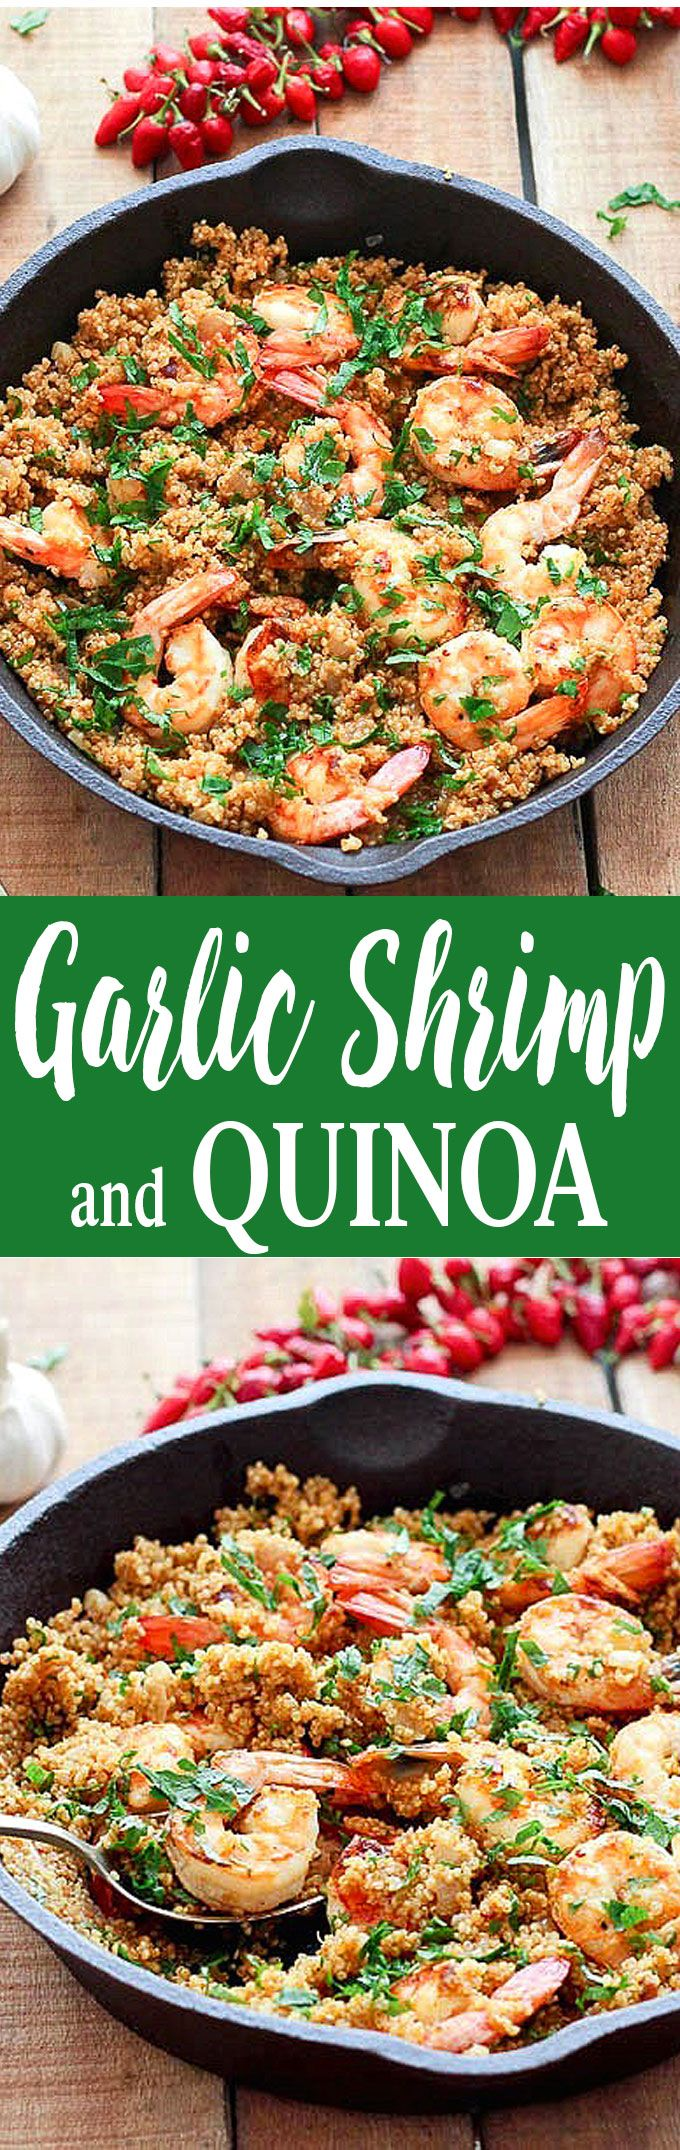 Garlic Shrimp and Quinoa - a simple, healthy and gluten-free dinner ready in 35 minutes. Only 260 calories per serving